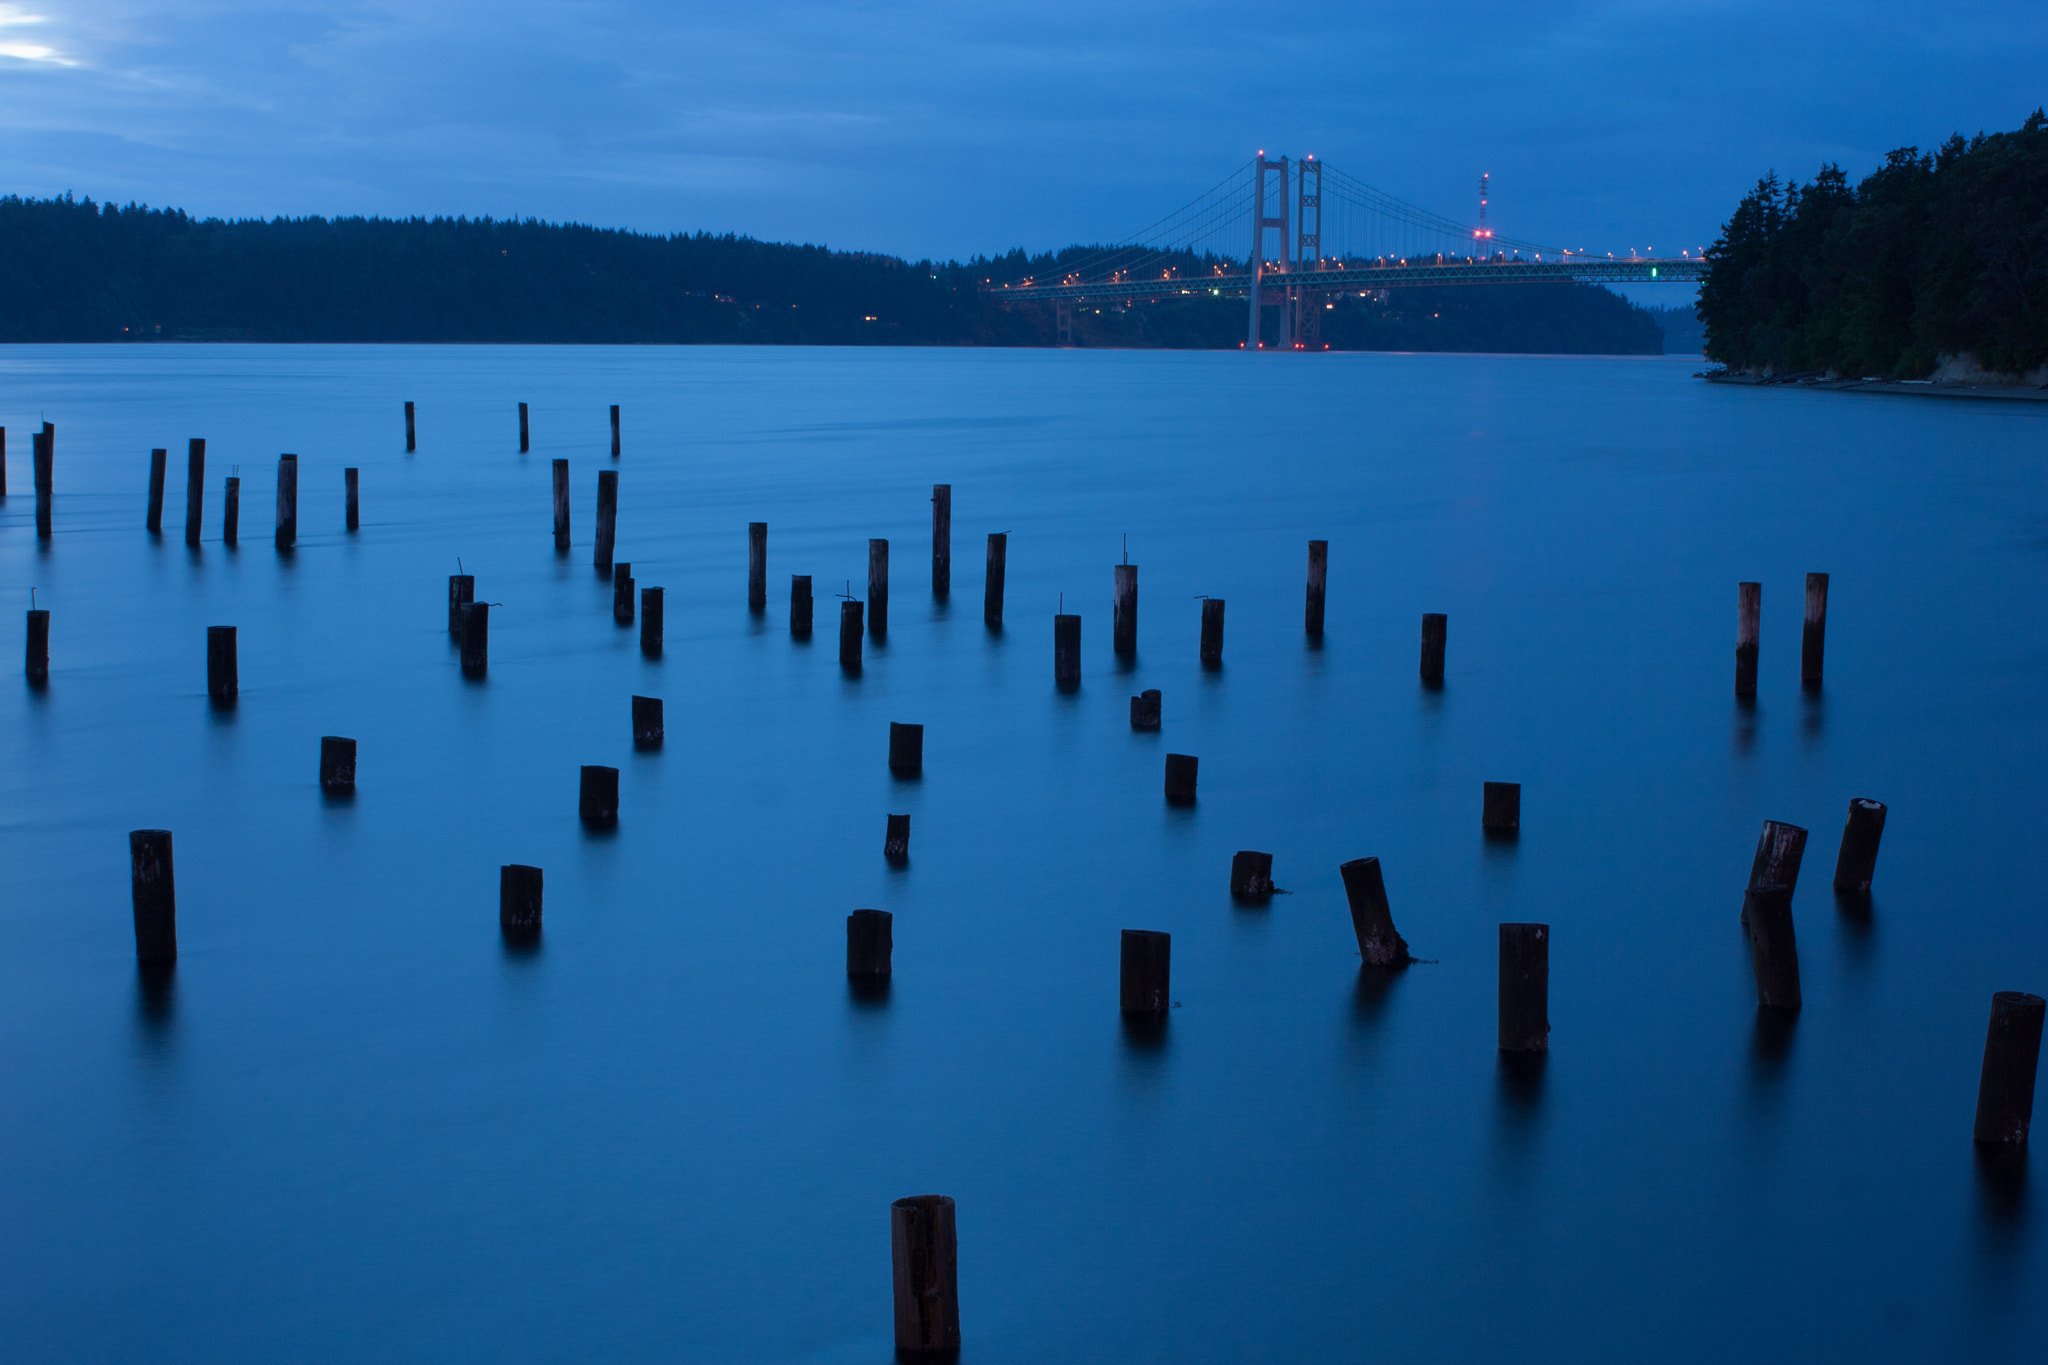 Photograph Titlow at night by Erik Hannon on 500px